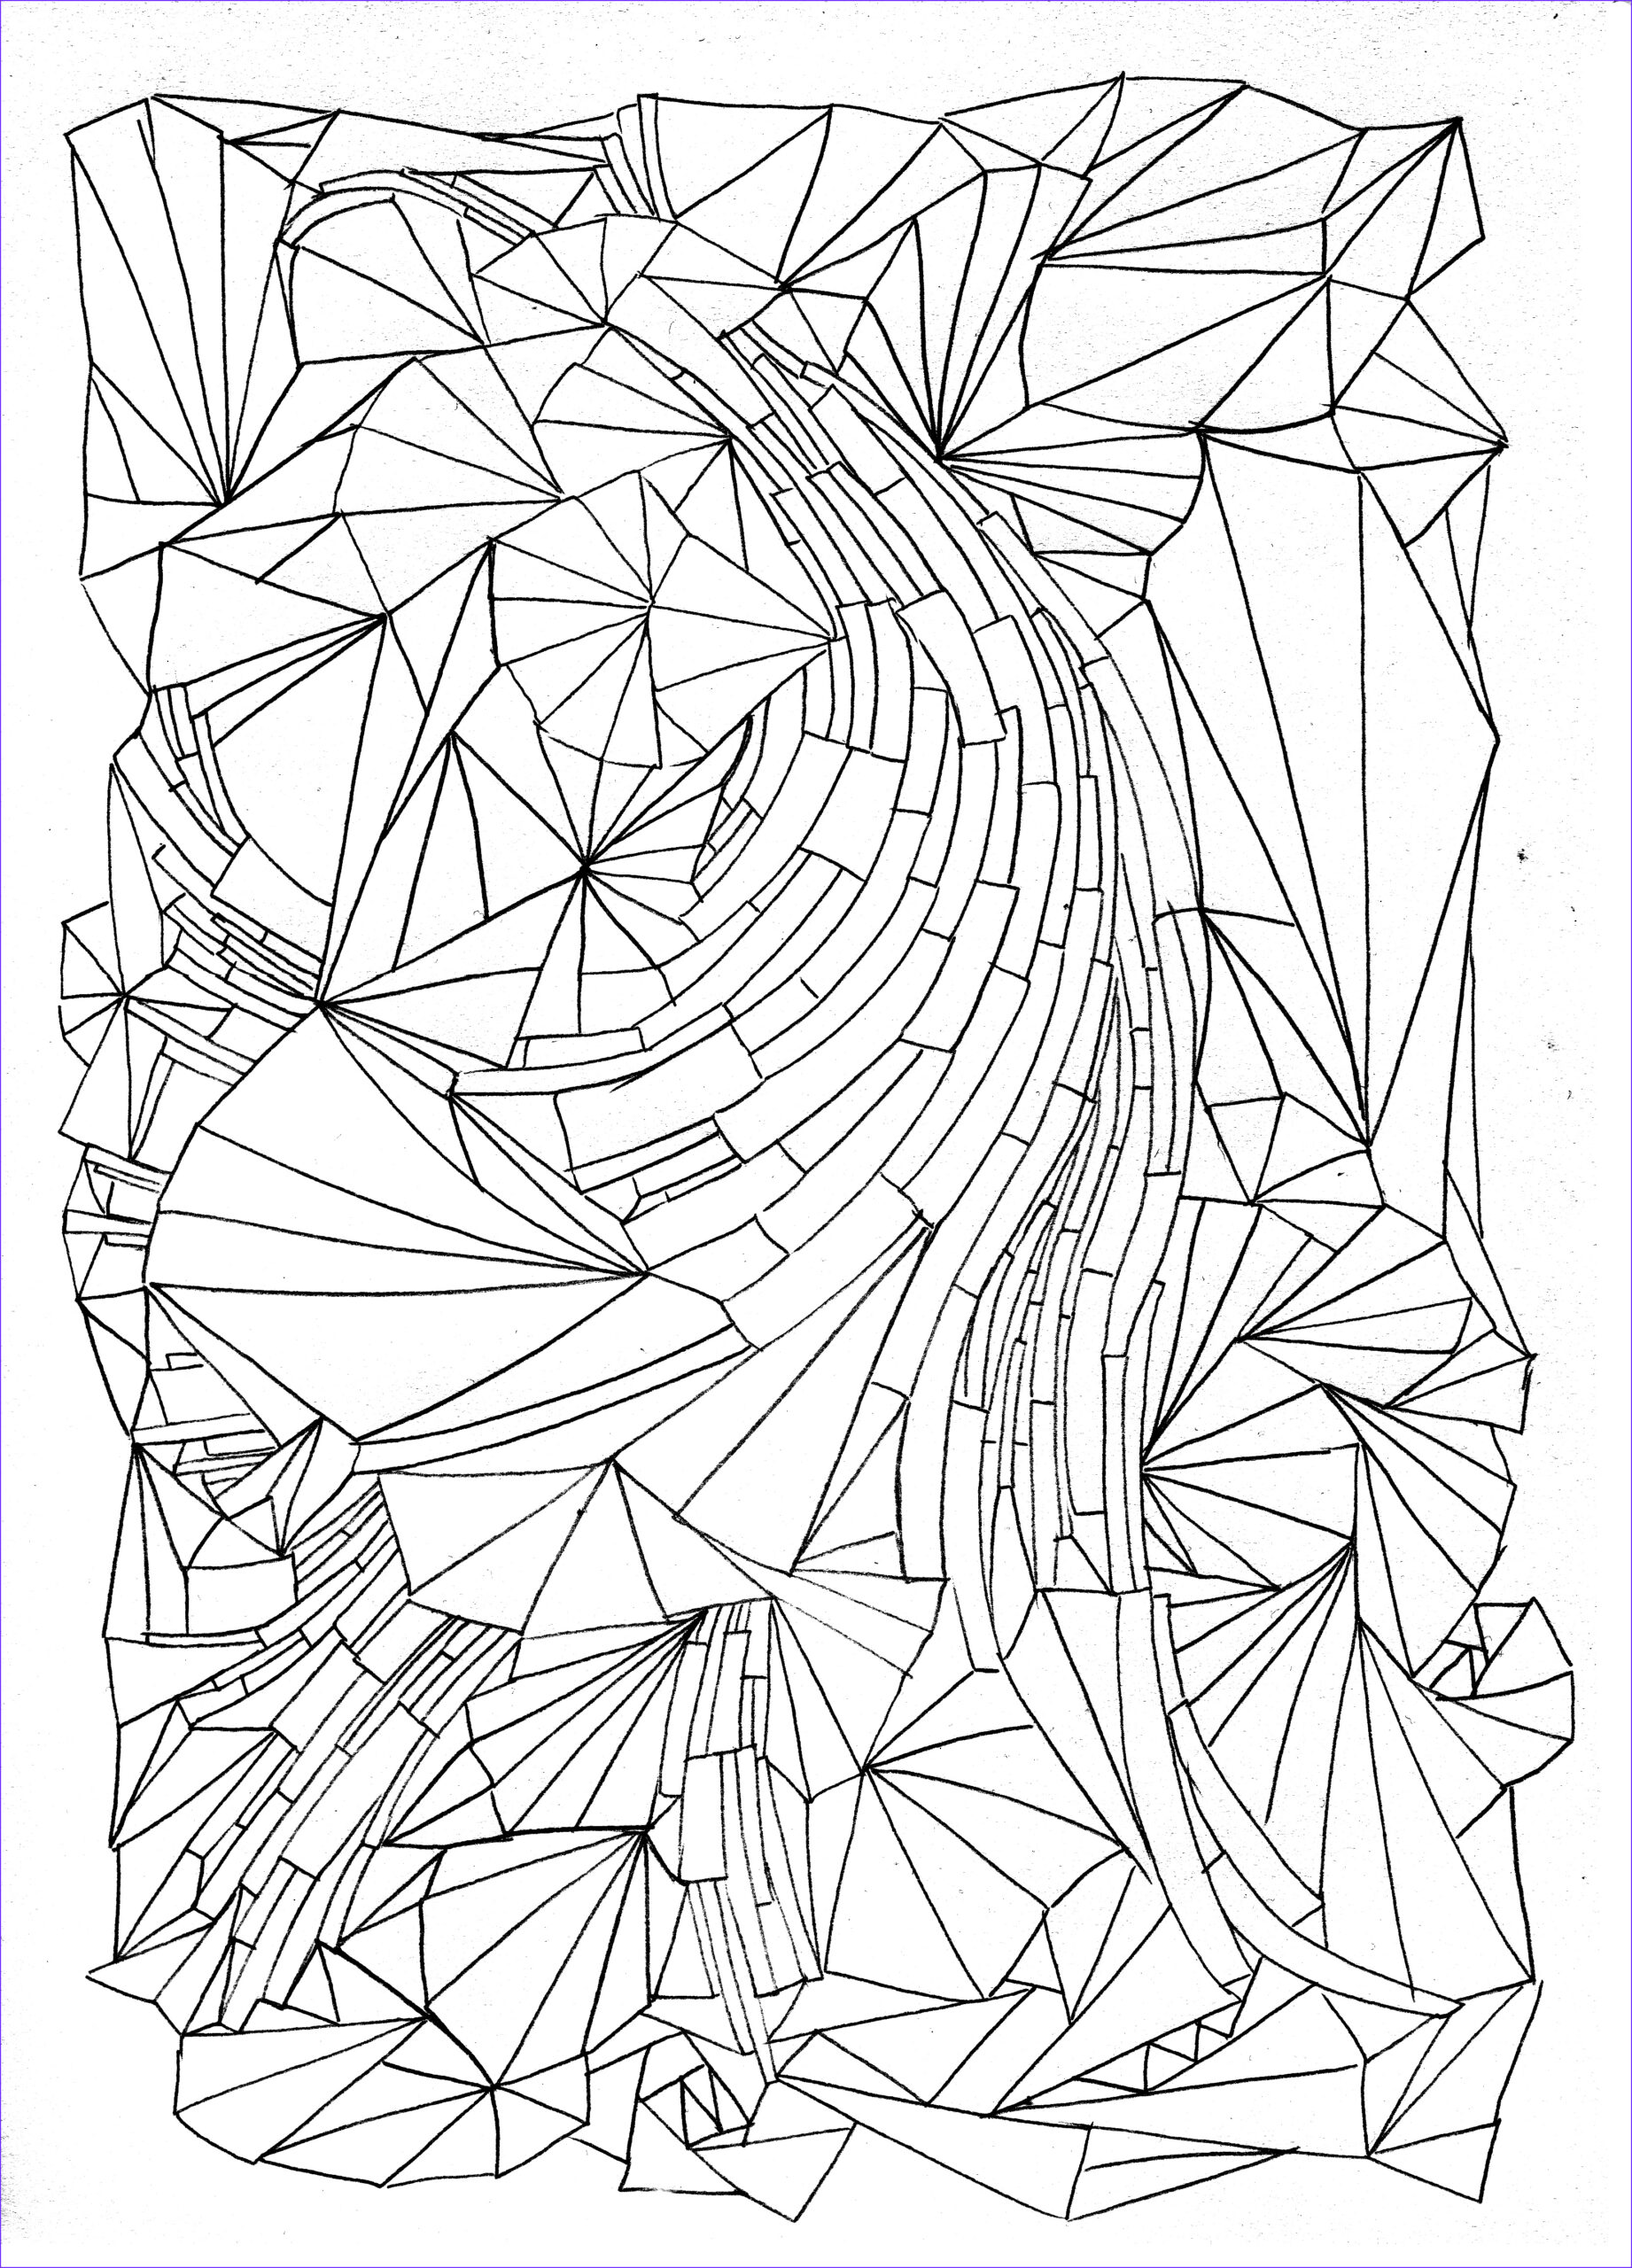 Coloring Pages Designs Inspirational Gallery Colouring Designs – thelinoprinter